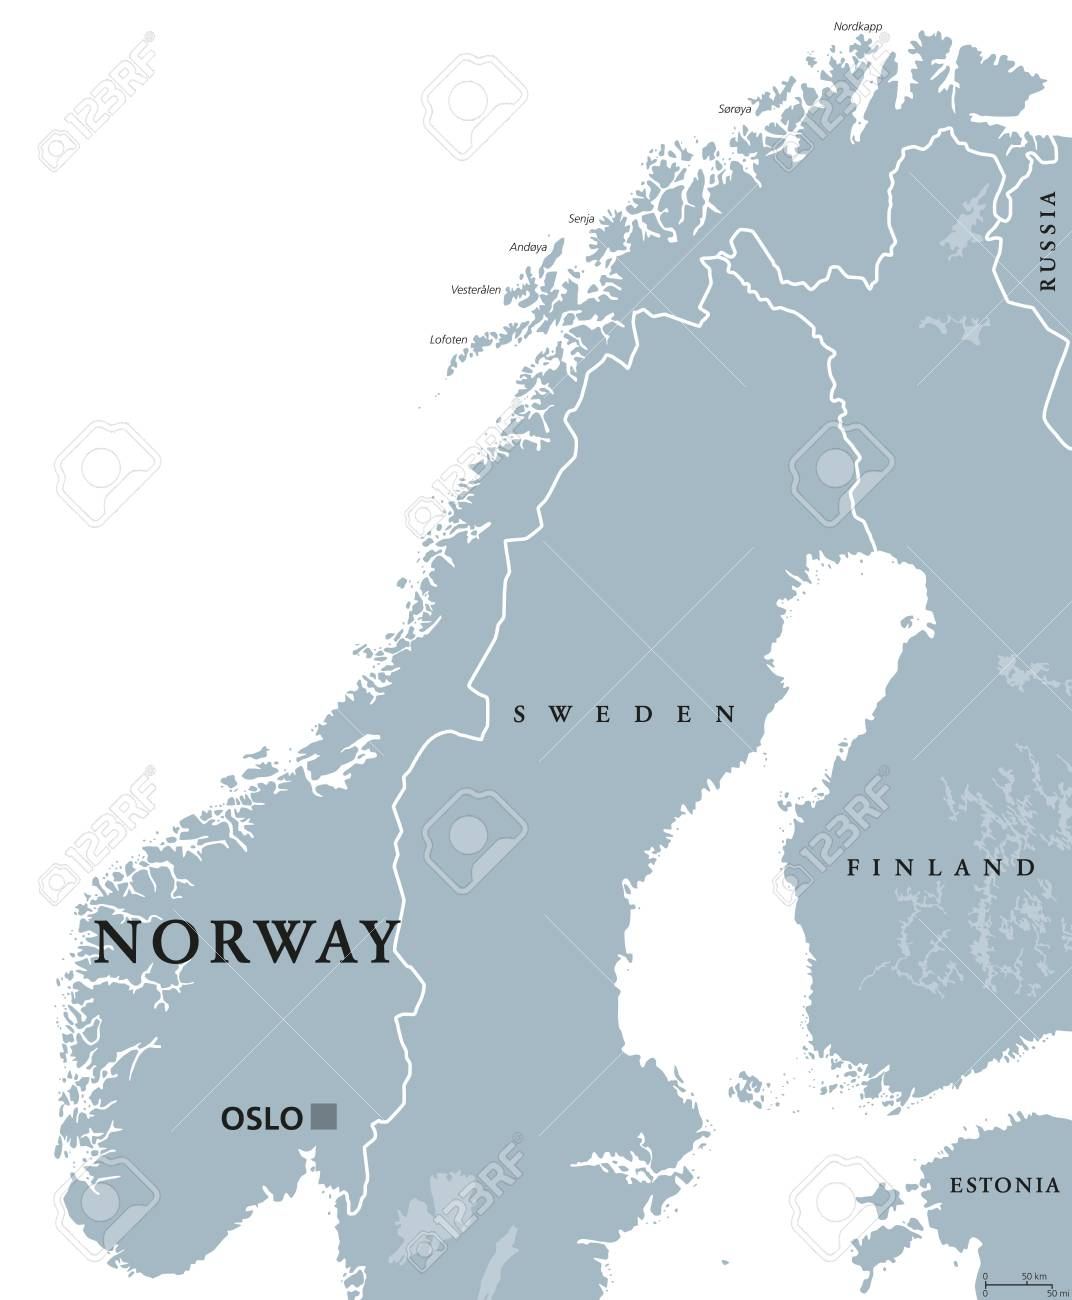 Norway Political Map With Capital Oslo National Borders And Royalty Free Cliparts Vectors And Stock Illustration Image 72773737